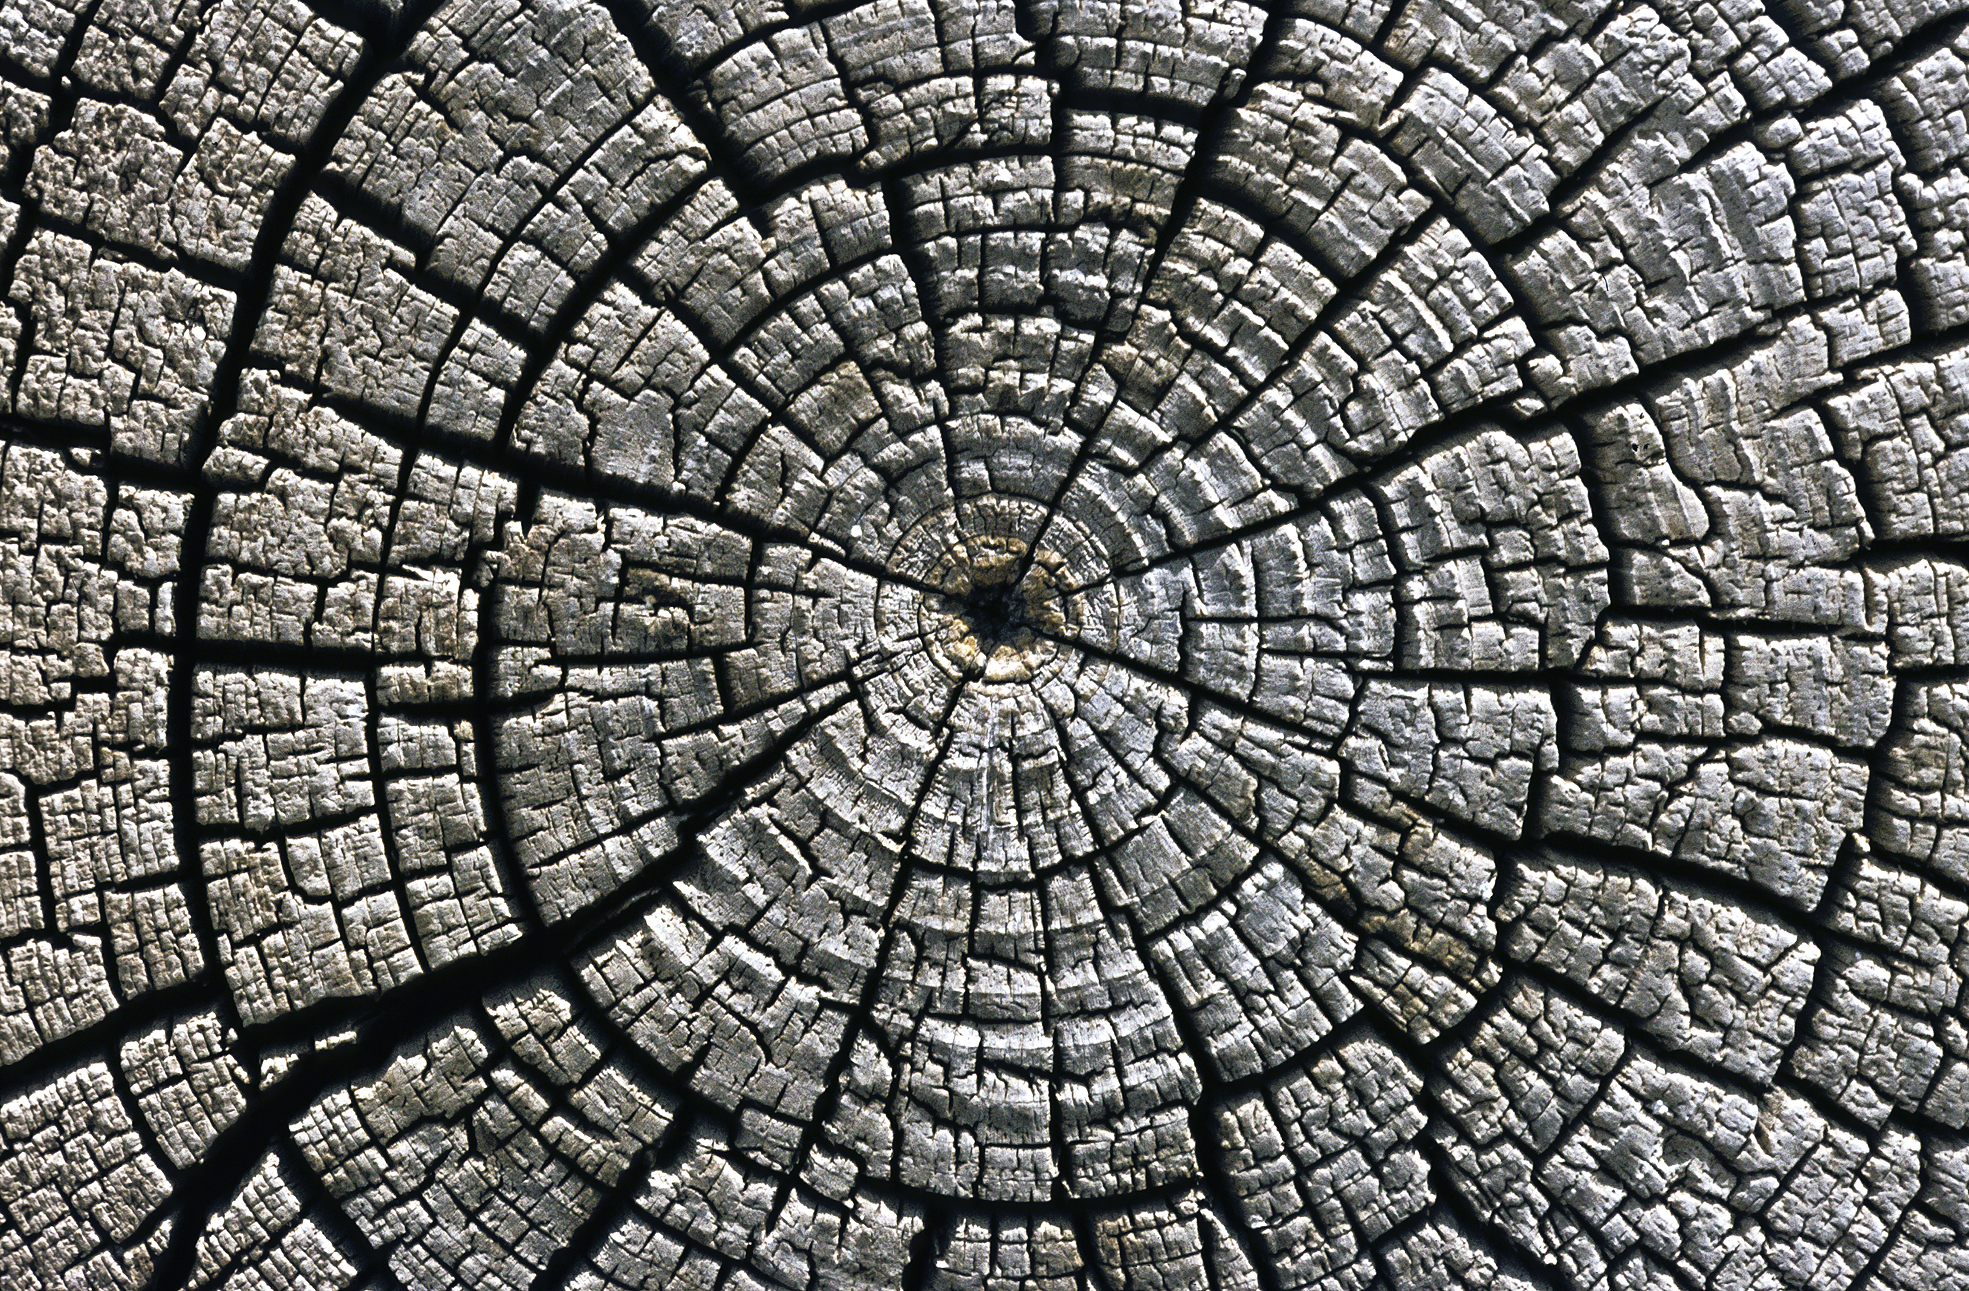 treerings dating method Tree rings are used to calibrate radiocarbon measurements calibration is necessary to account for changes in the global radiocarbon concentration over time.